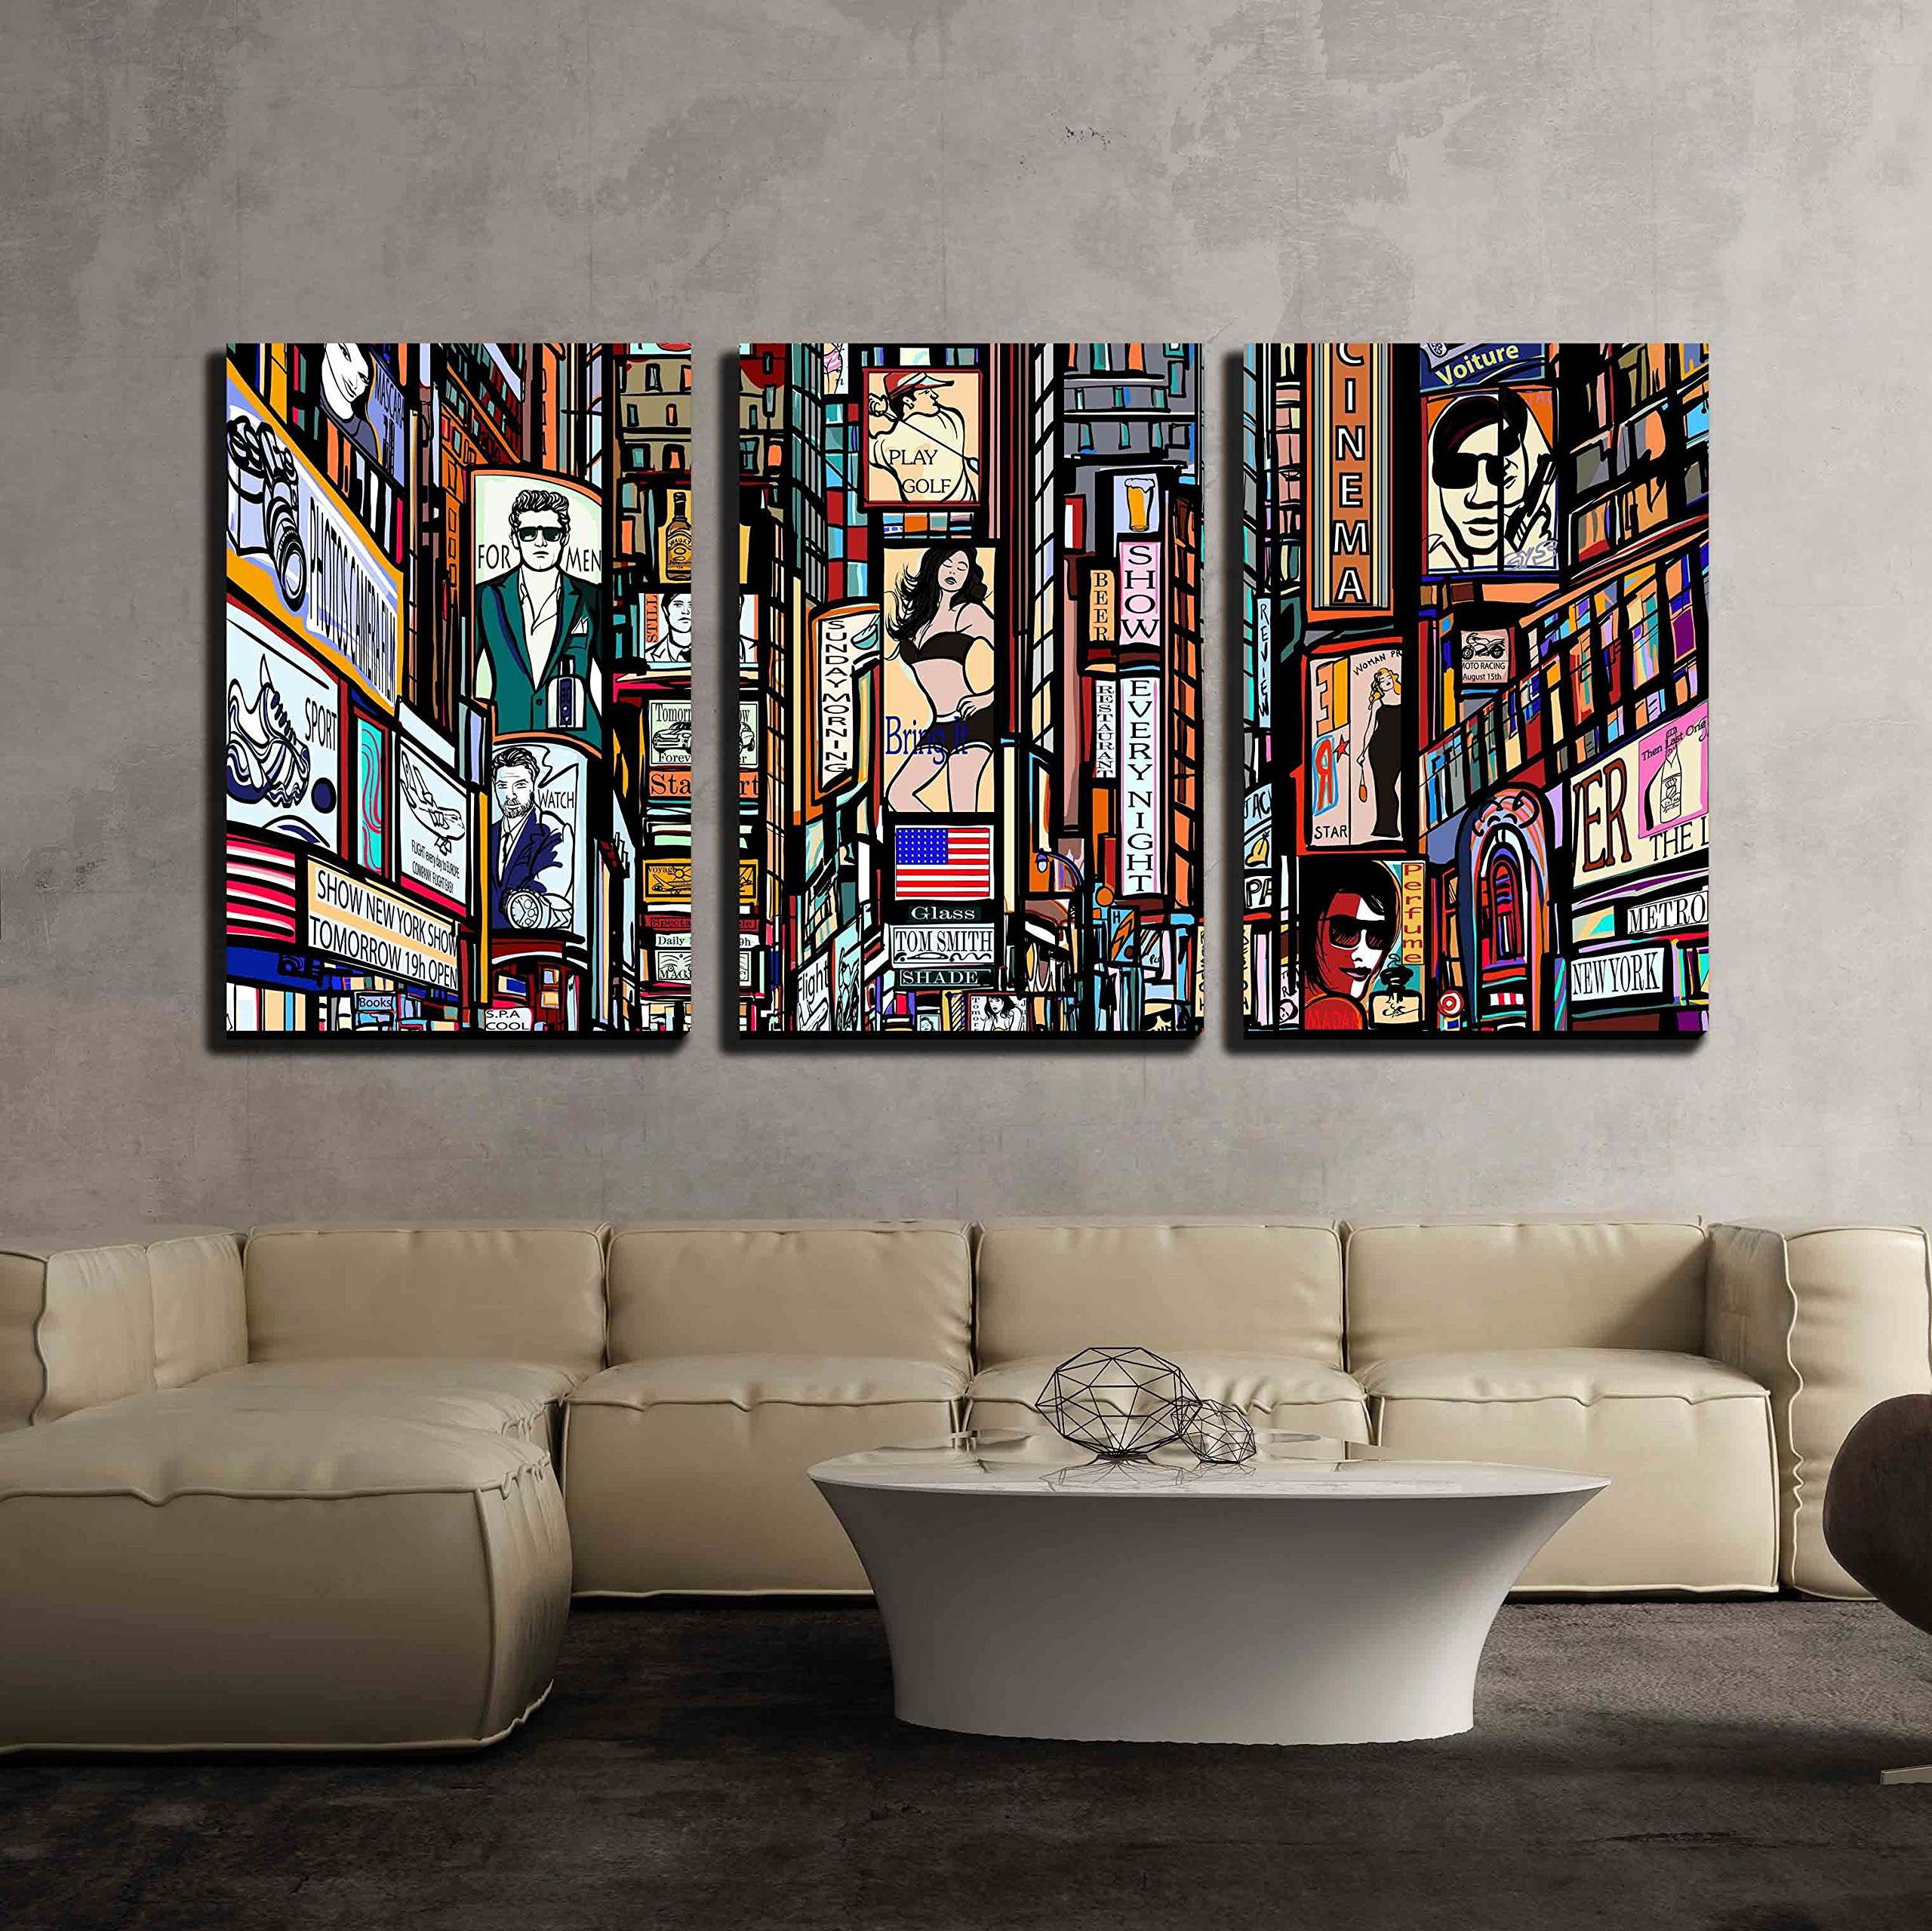 wall26 - 3 Piece Canvas Wall Art - Illustration of a Street in New York City - Modern Home Decor Stretched and Framed Ready to Hang - 16''x24''x3 Panels